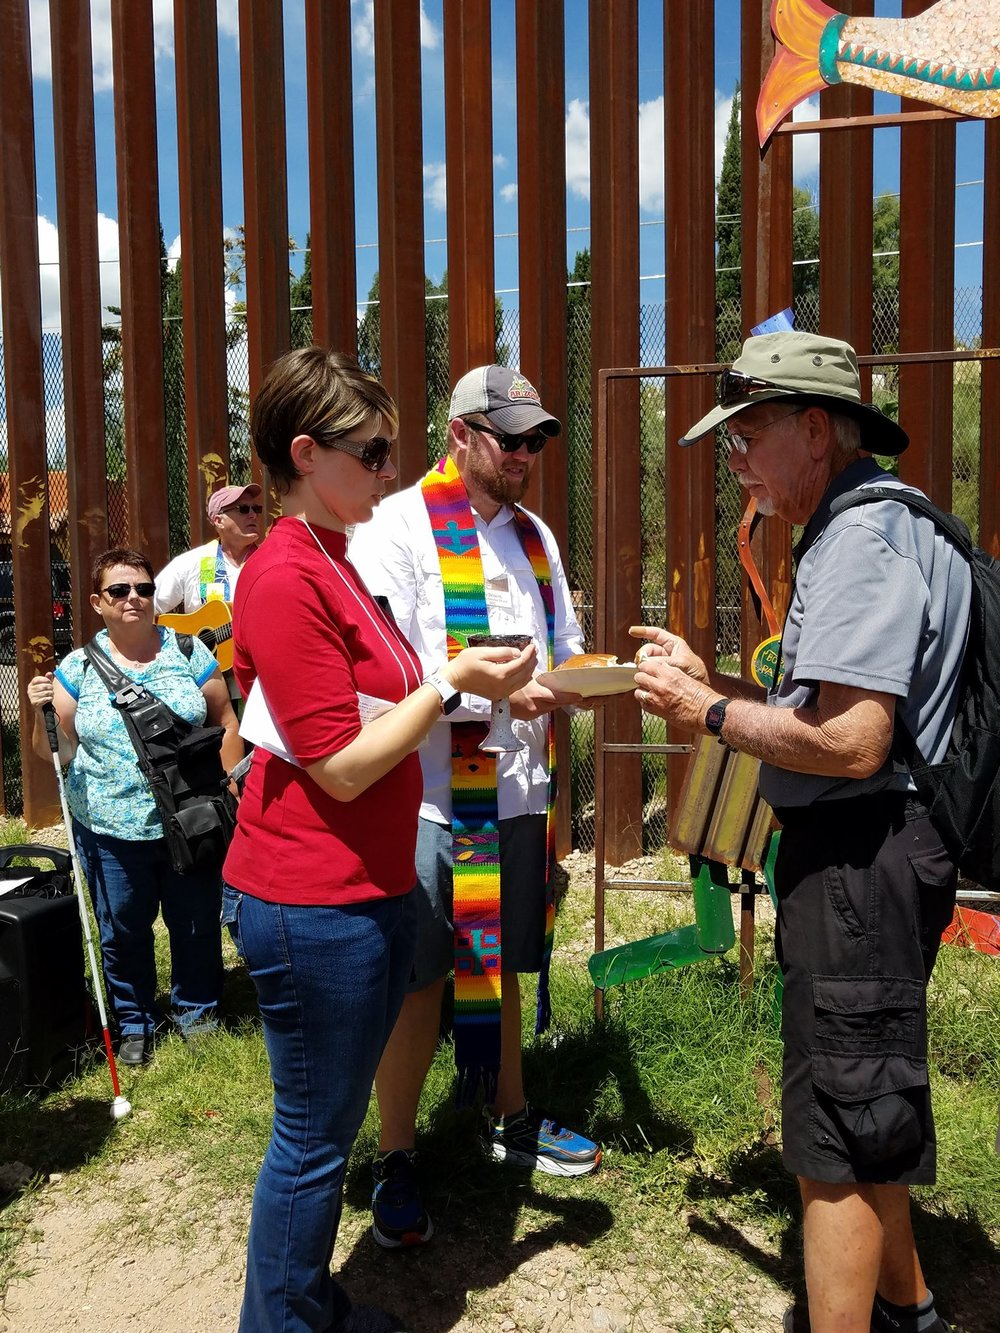 communion at the border wall by rebecca dickinson.jpg